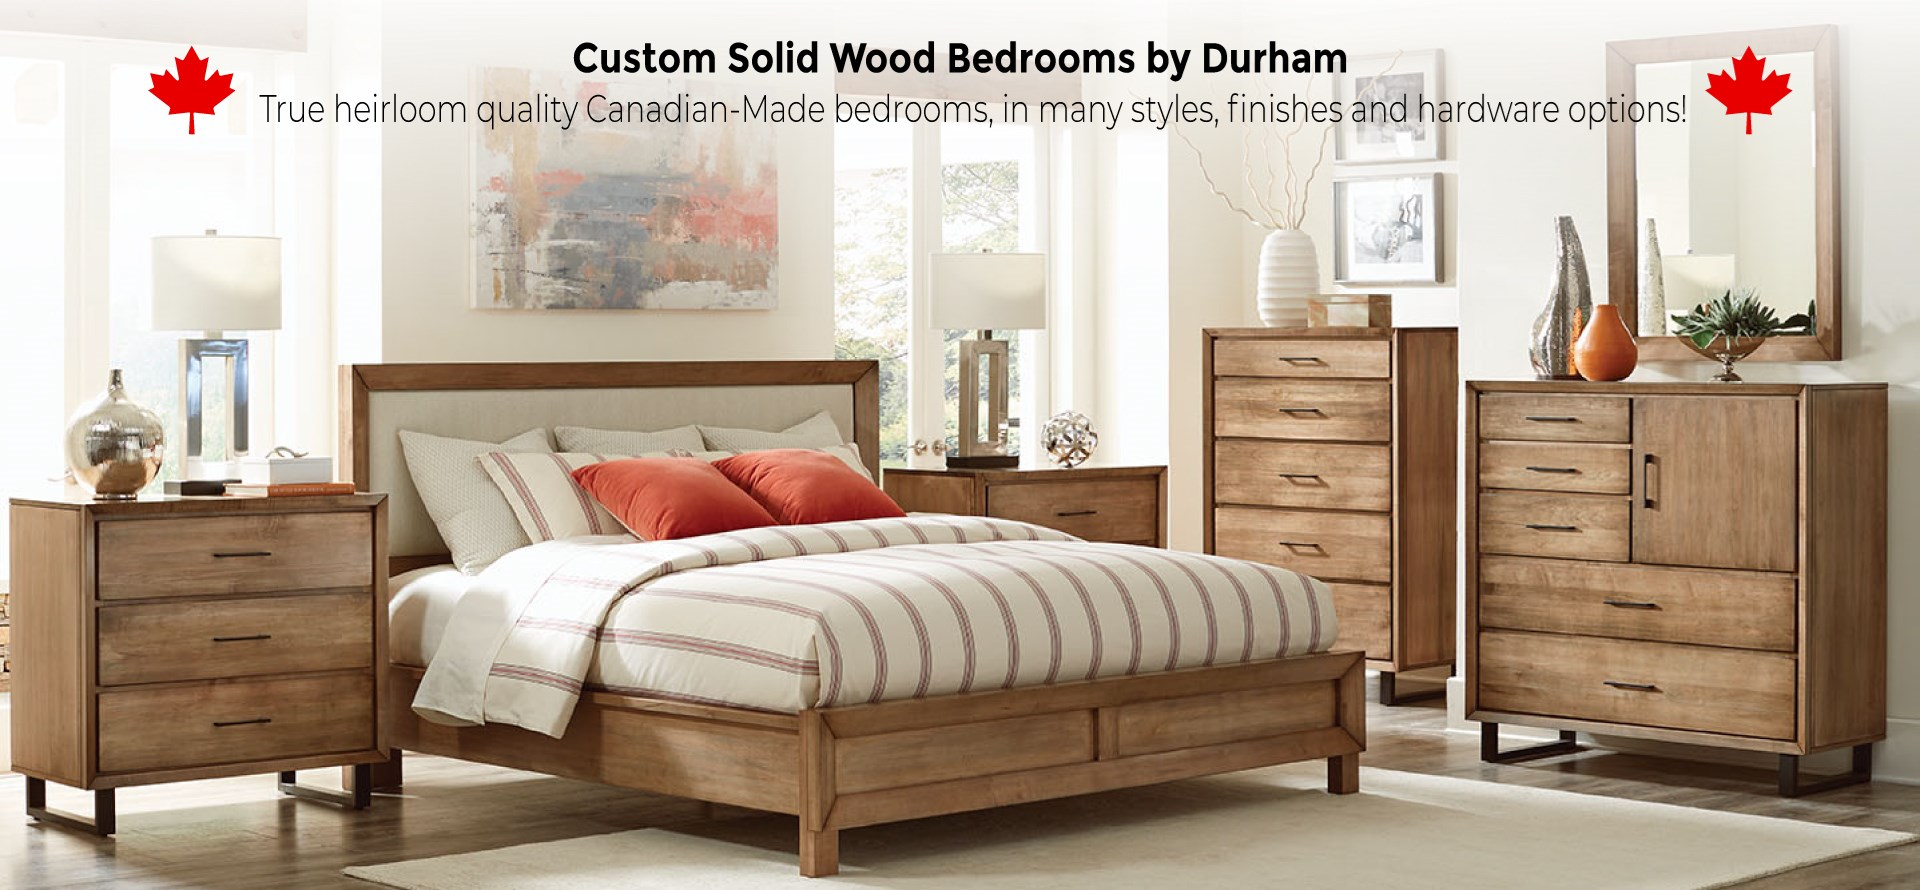 Custom Solid Wood Bedrooms by Durham - Canadian-made